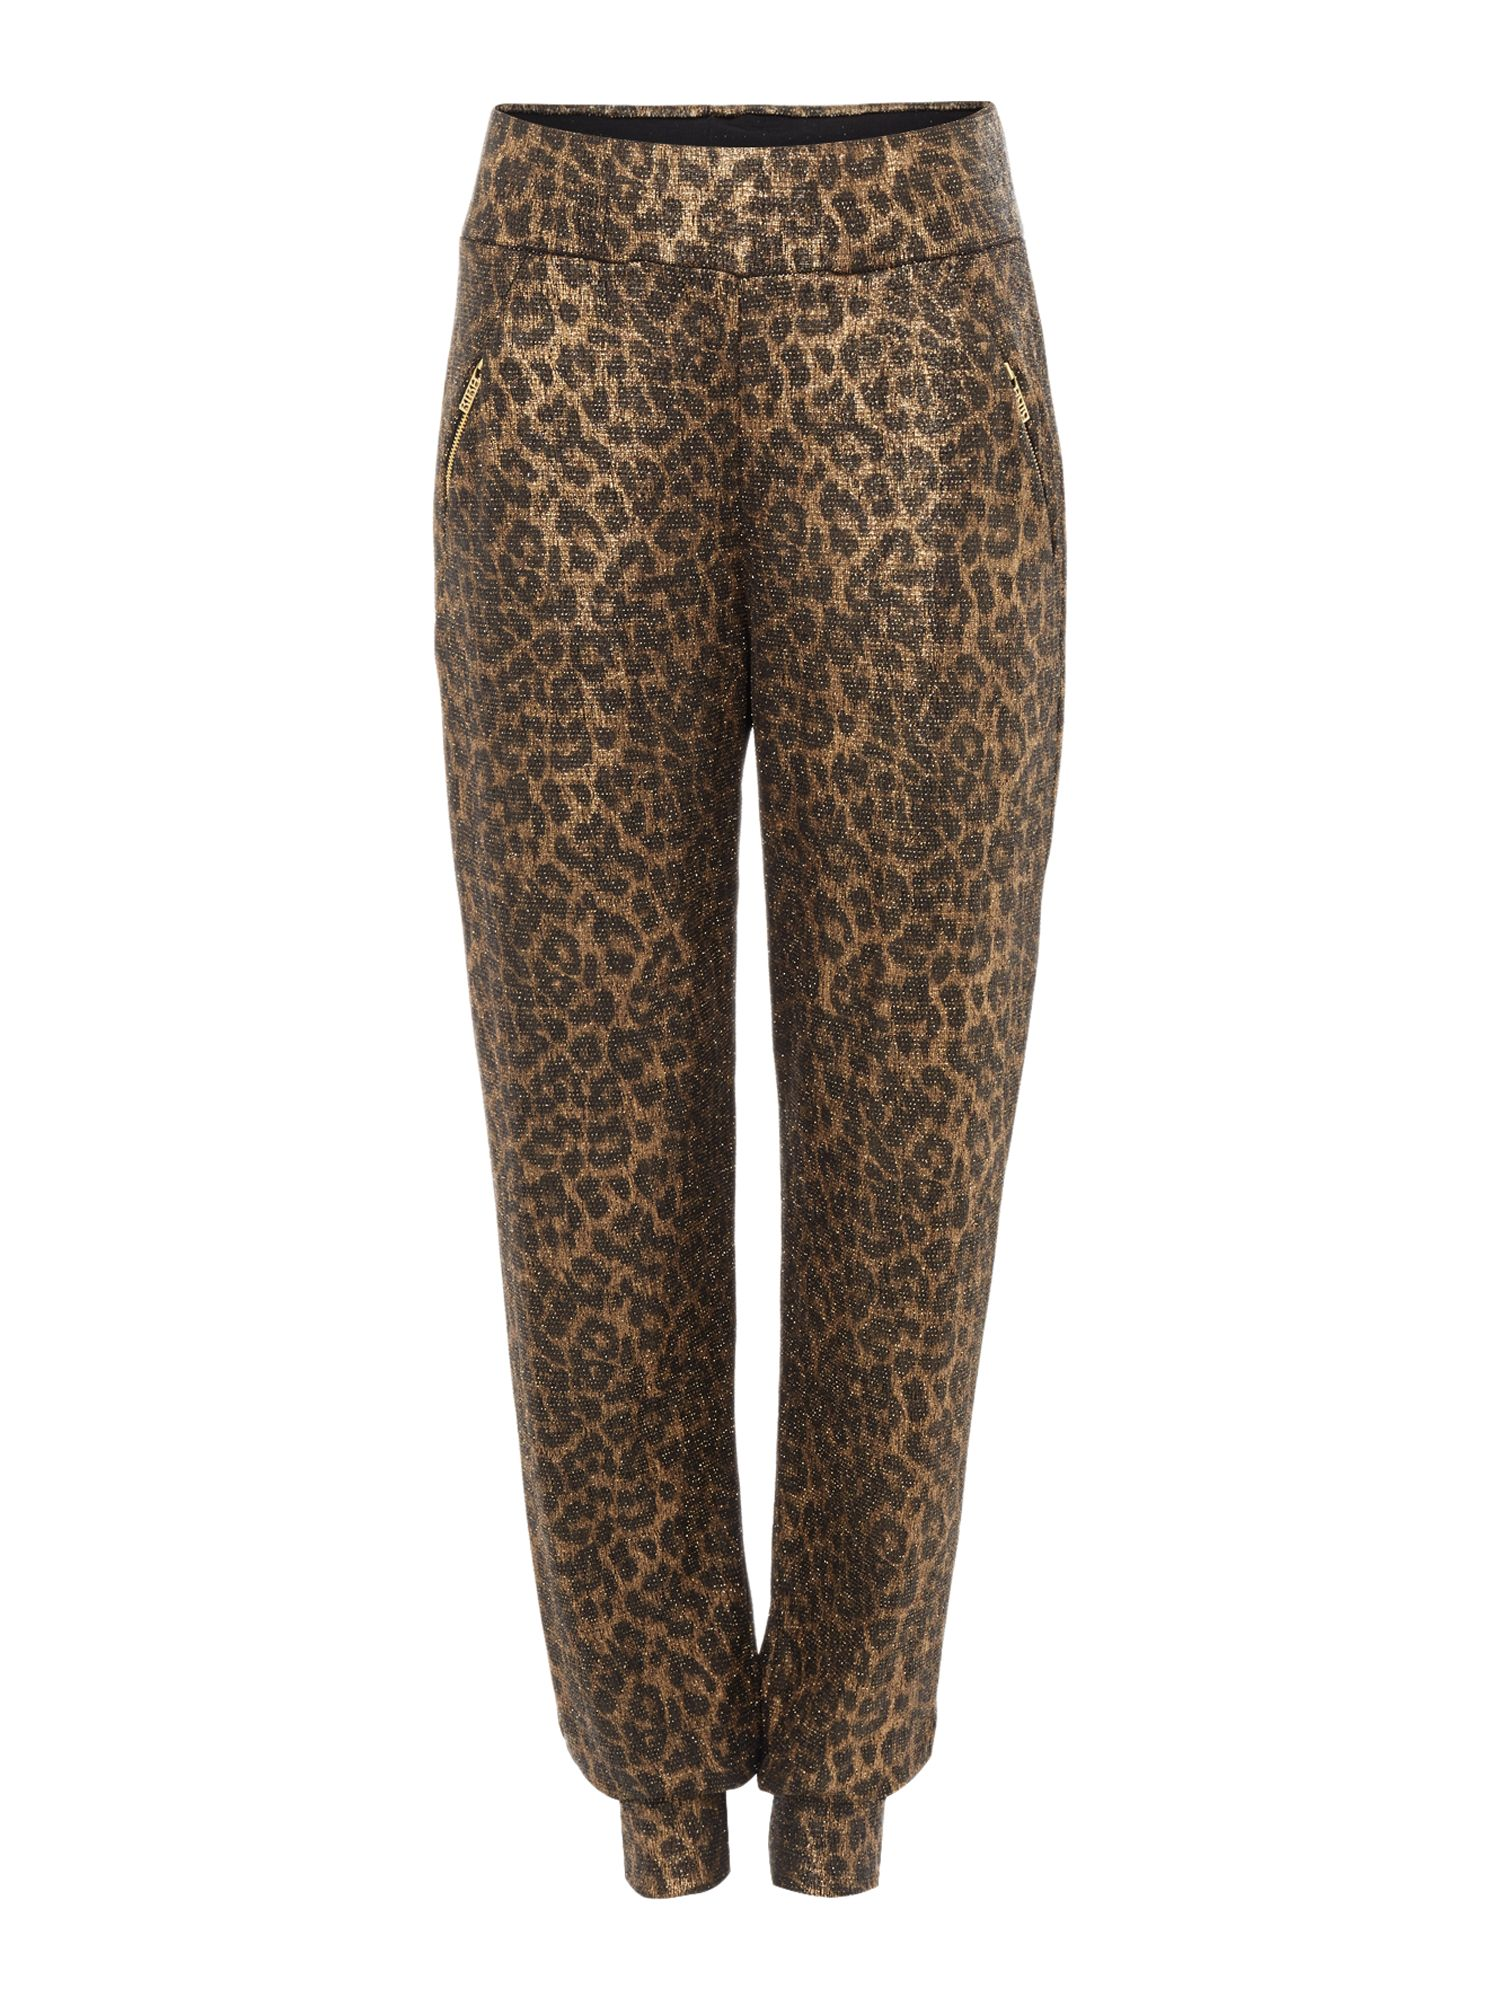 Biba Biba Body luxe casualwear leopard zip trousers, Gold